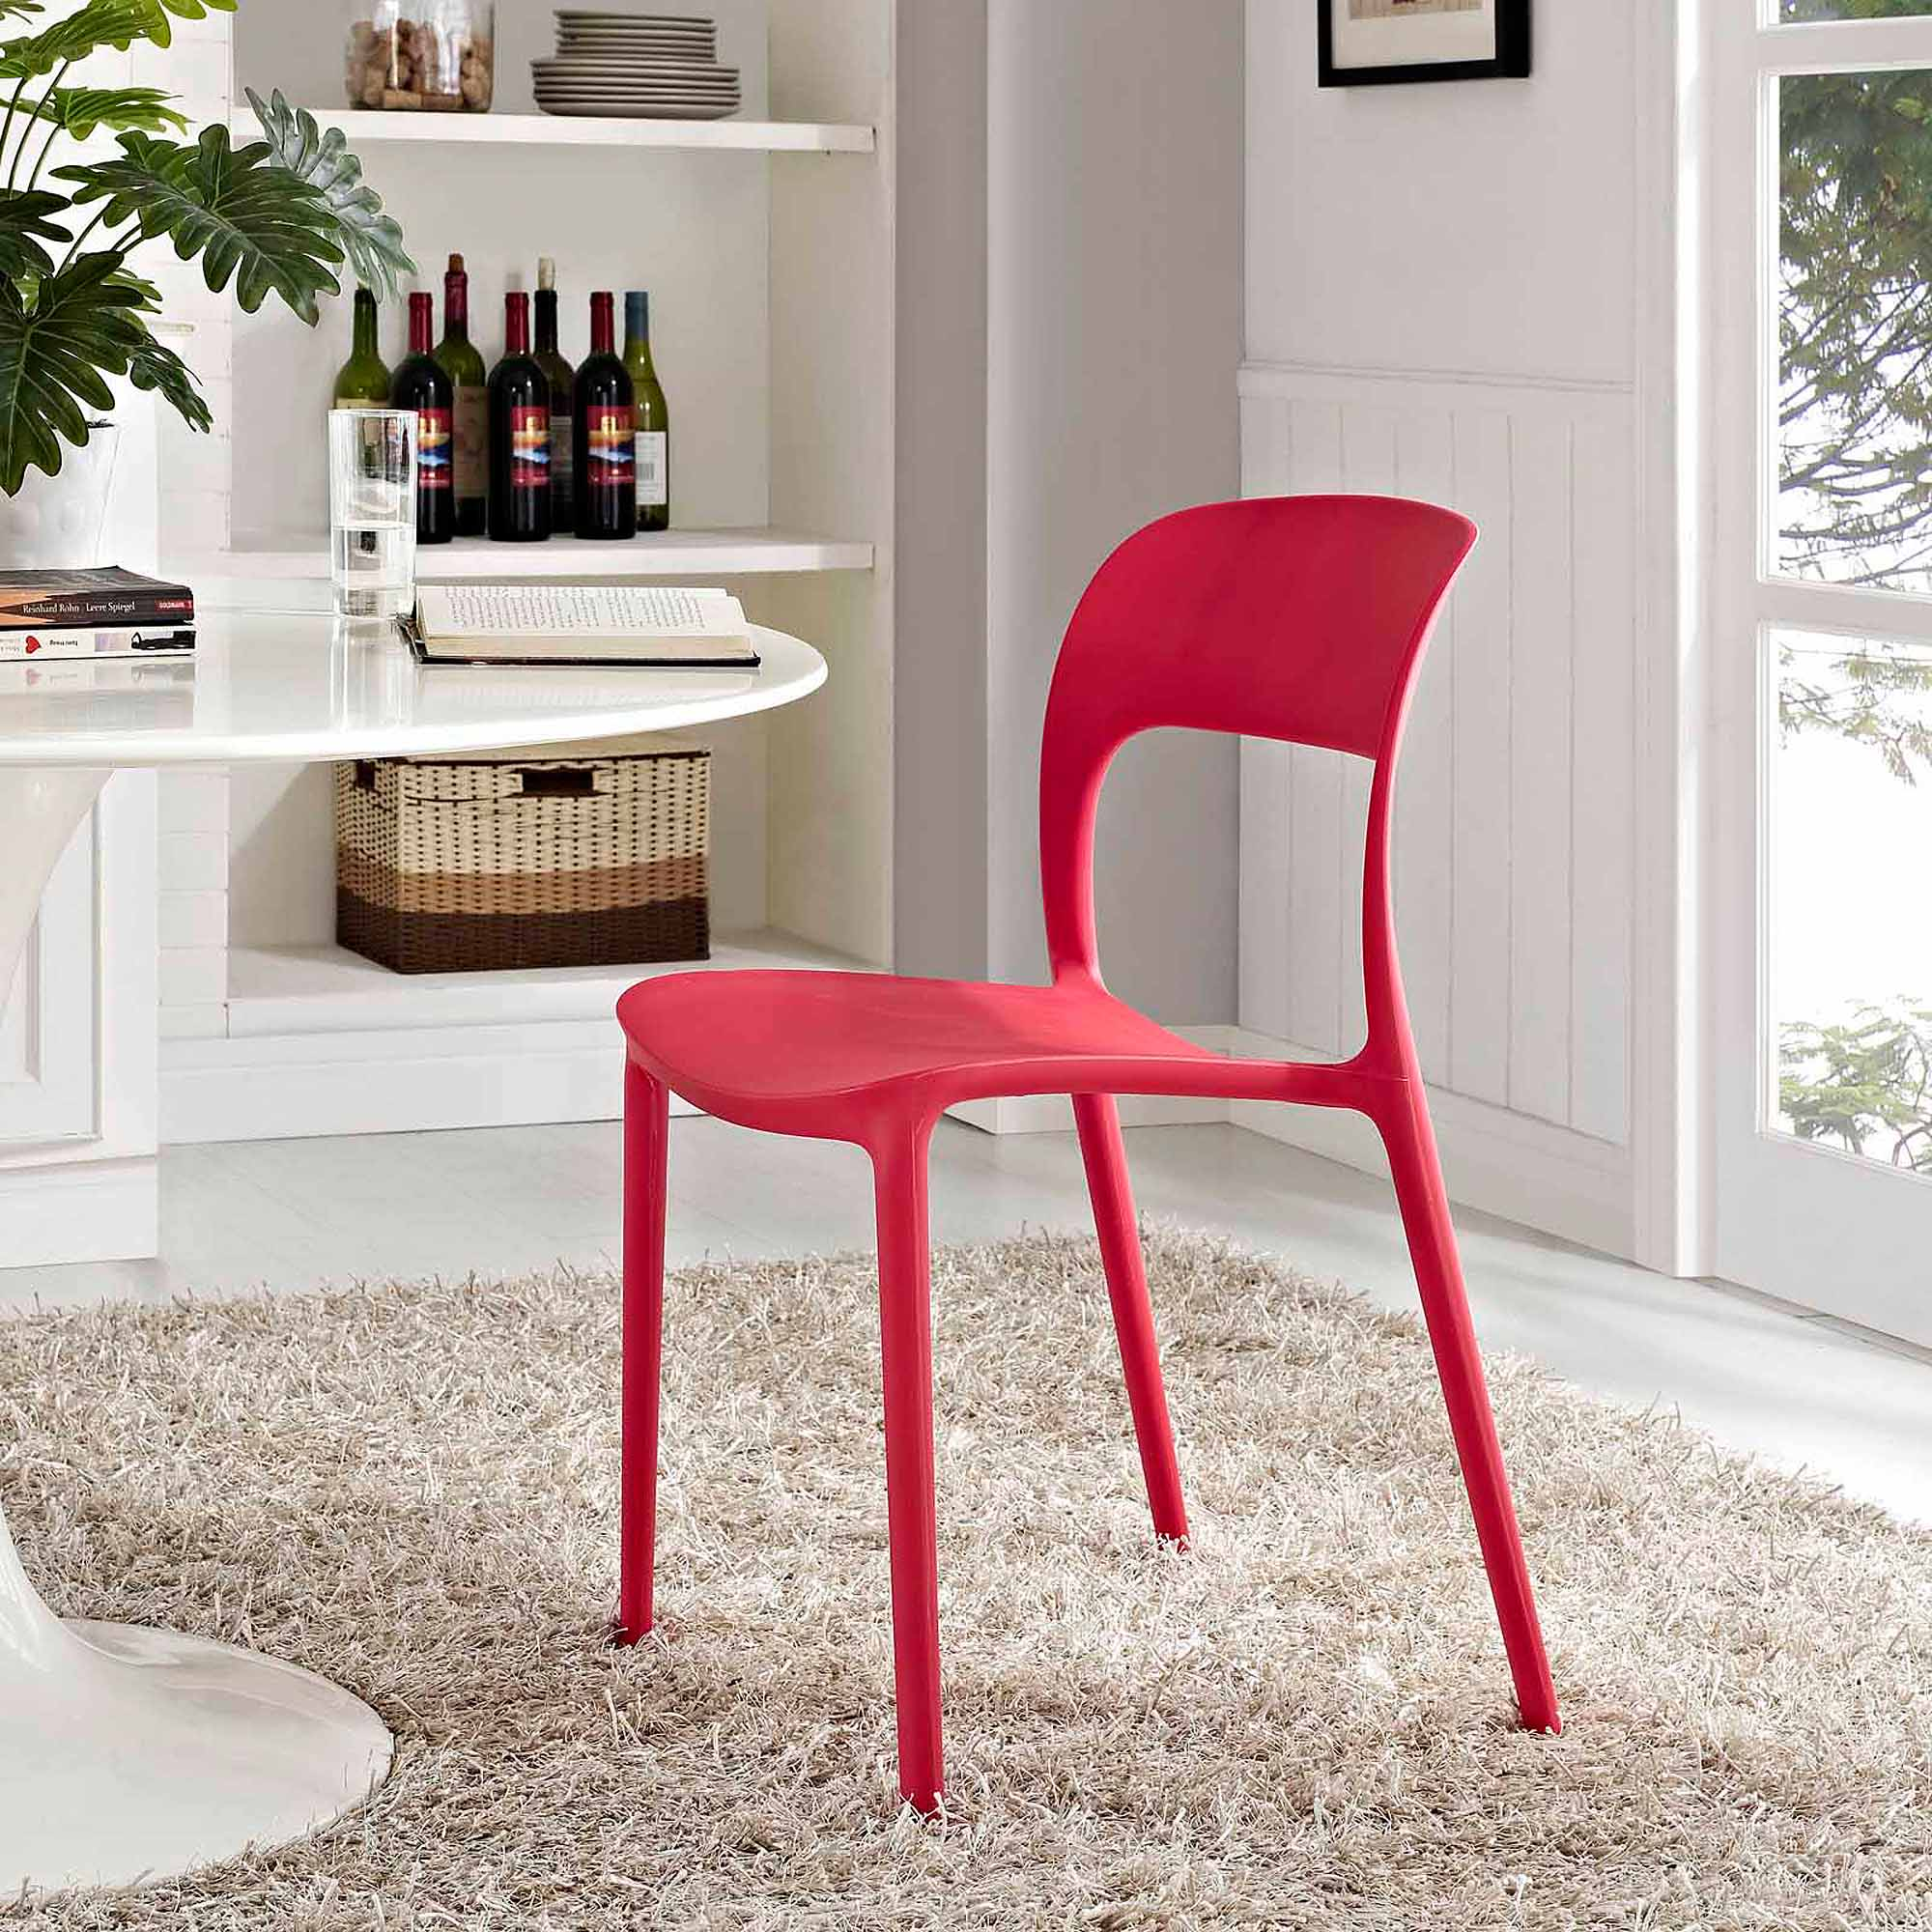 Modway Hop Dining Chair for Indoor or Outdoor Use Multiple Colors